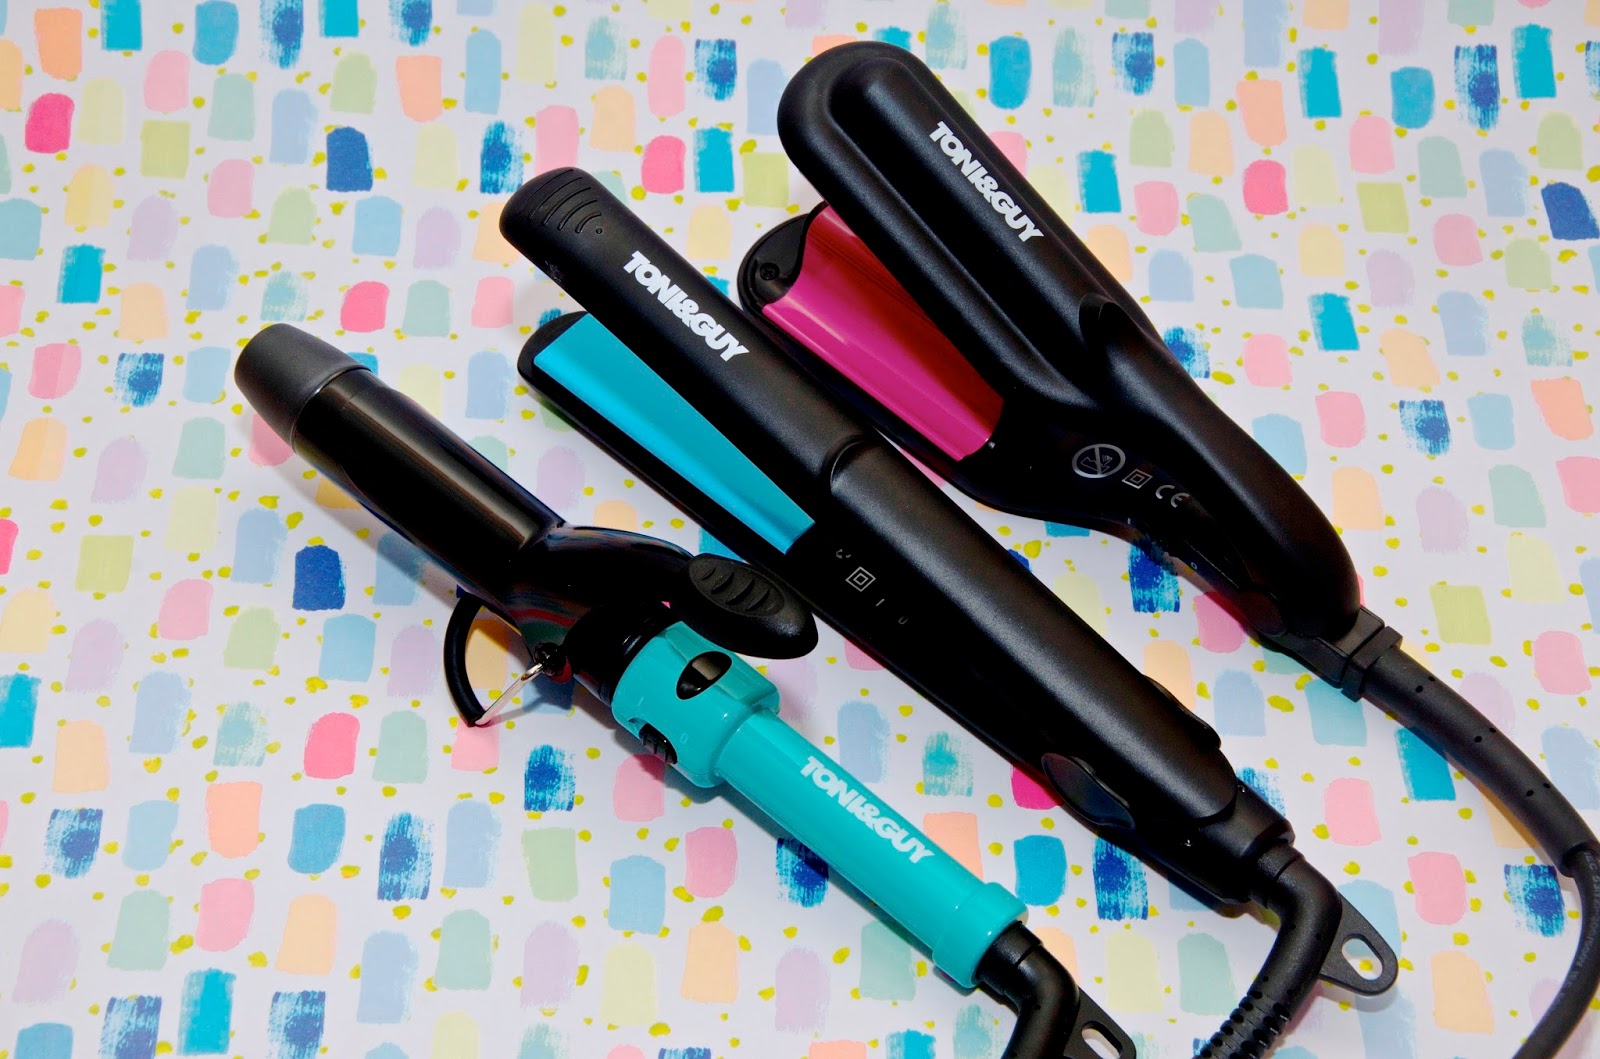 Travel hair tools